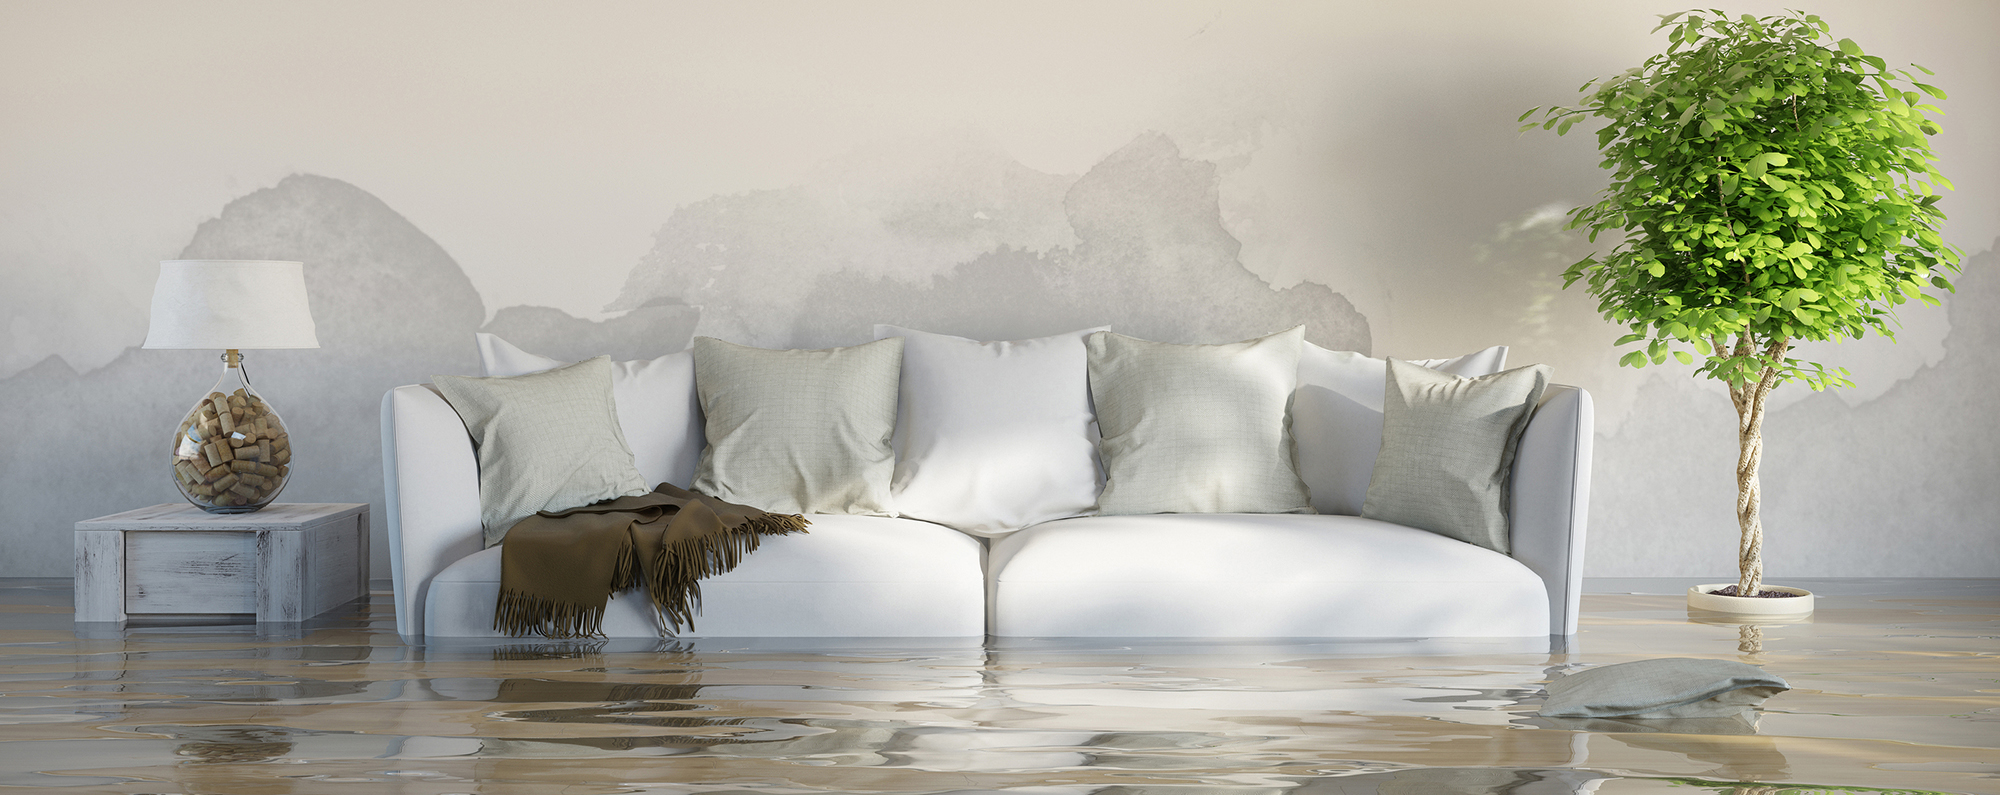 Water-damage-during-the-holidays